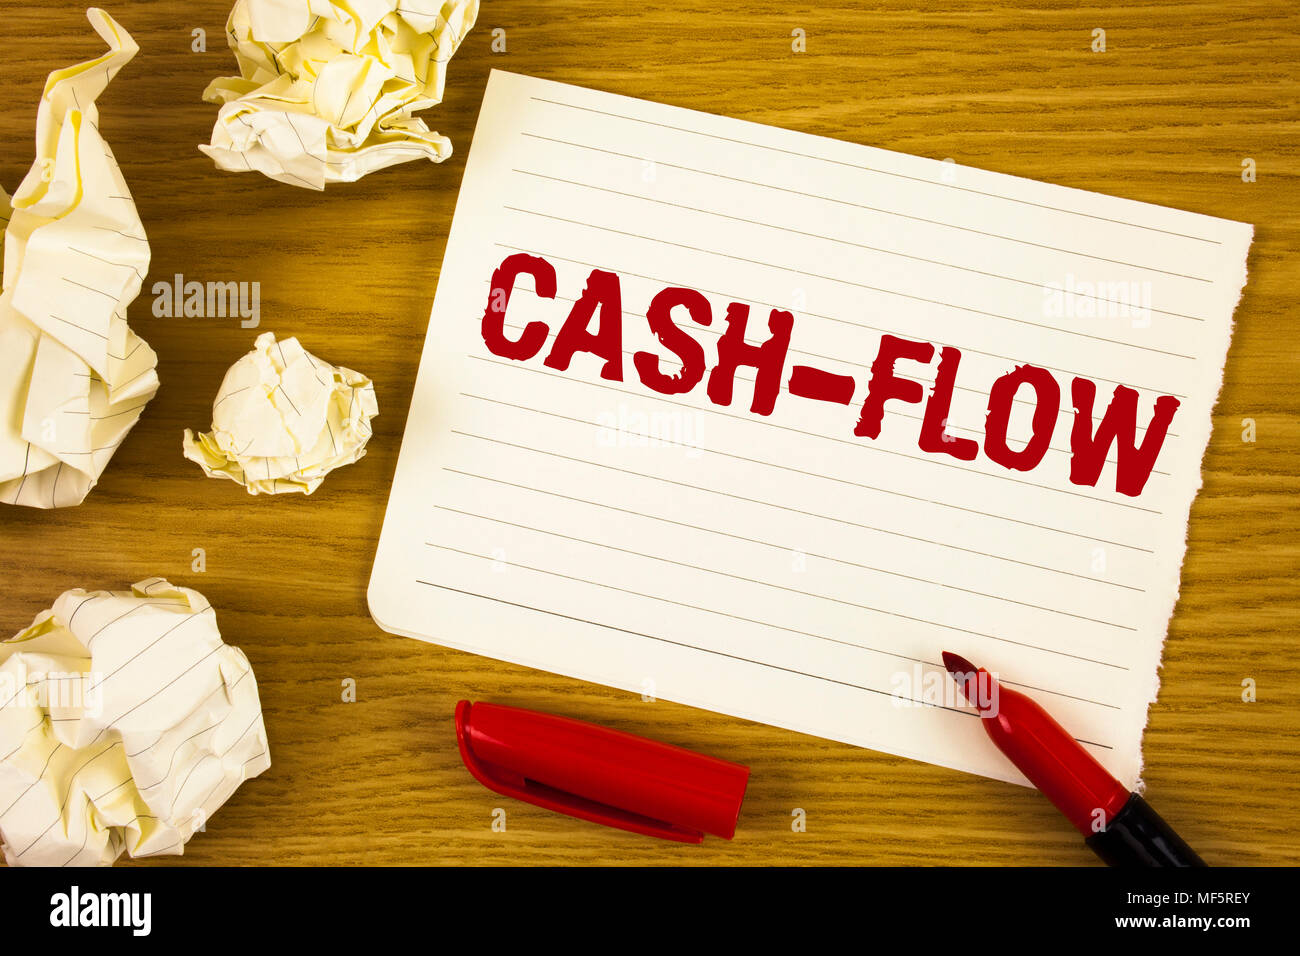 """call of money modern cash fare essay New: what is """"sovereign money"""" and why do people think it's a good idea  to  a magical fallacy i call """"fuzzible money"""" that allows them to avoid calling into   we successfully trade paper cash and digits in an account for food, shelter etc."""